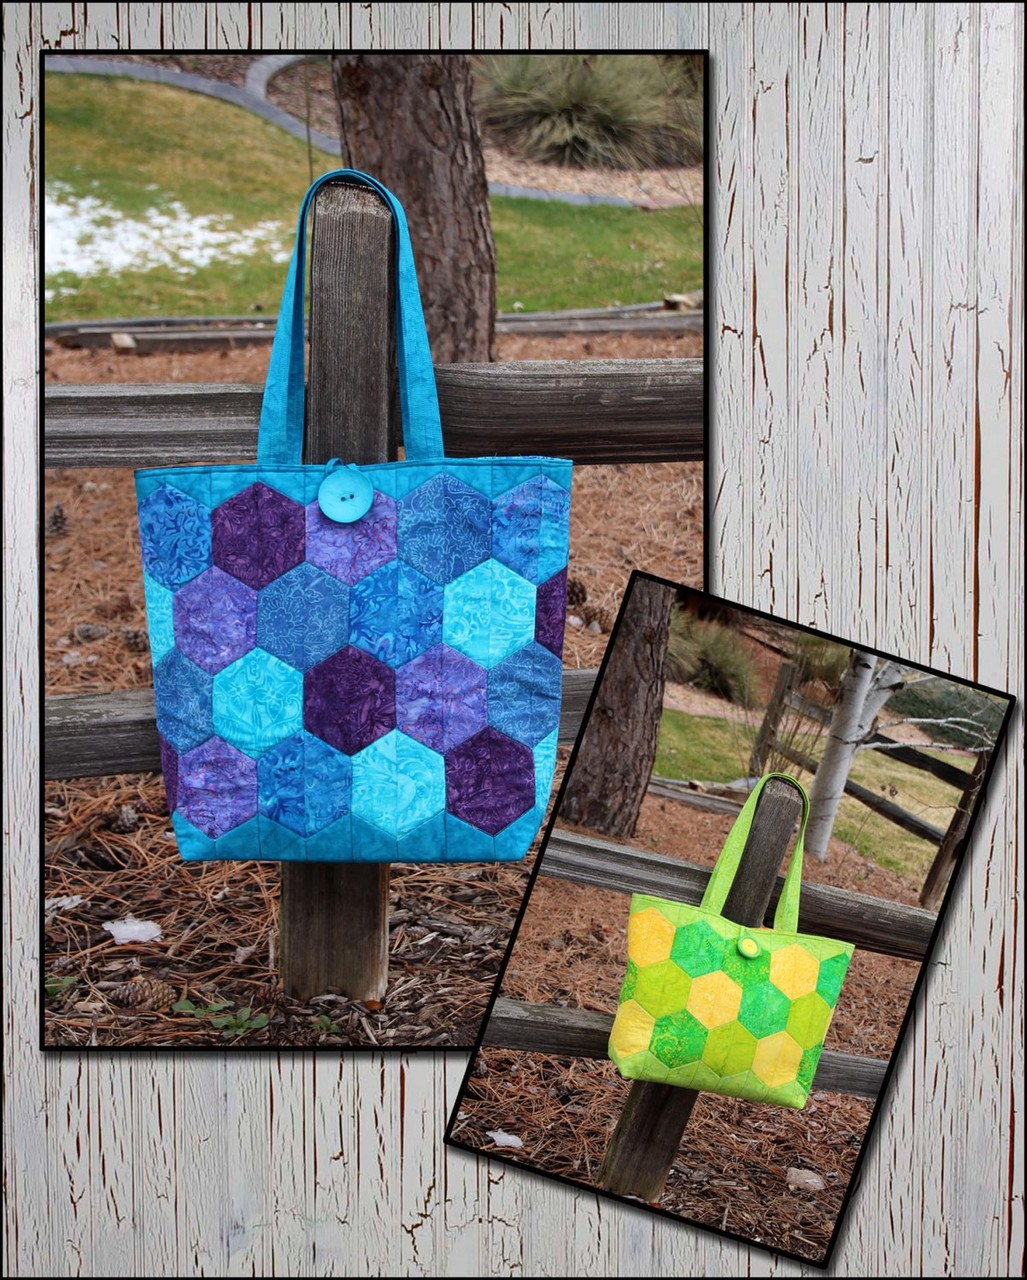 CLPSMA003 - Hexie Tote in Two Sizes Pattern by Cut Loose Press